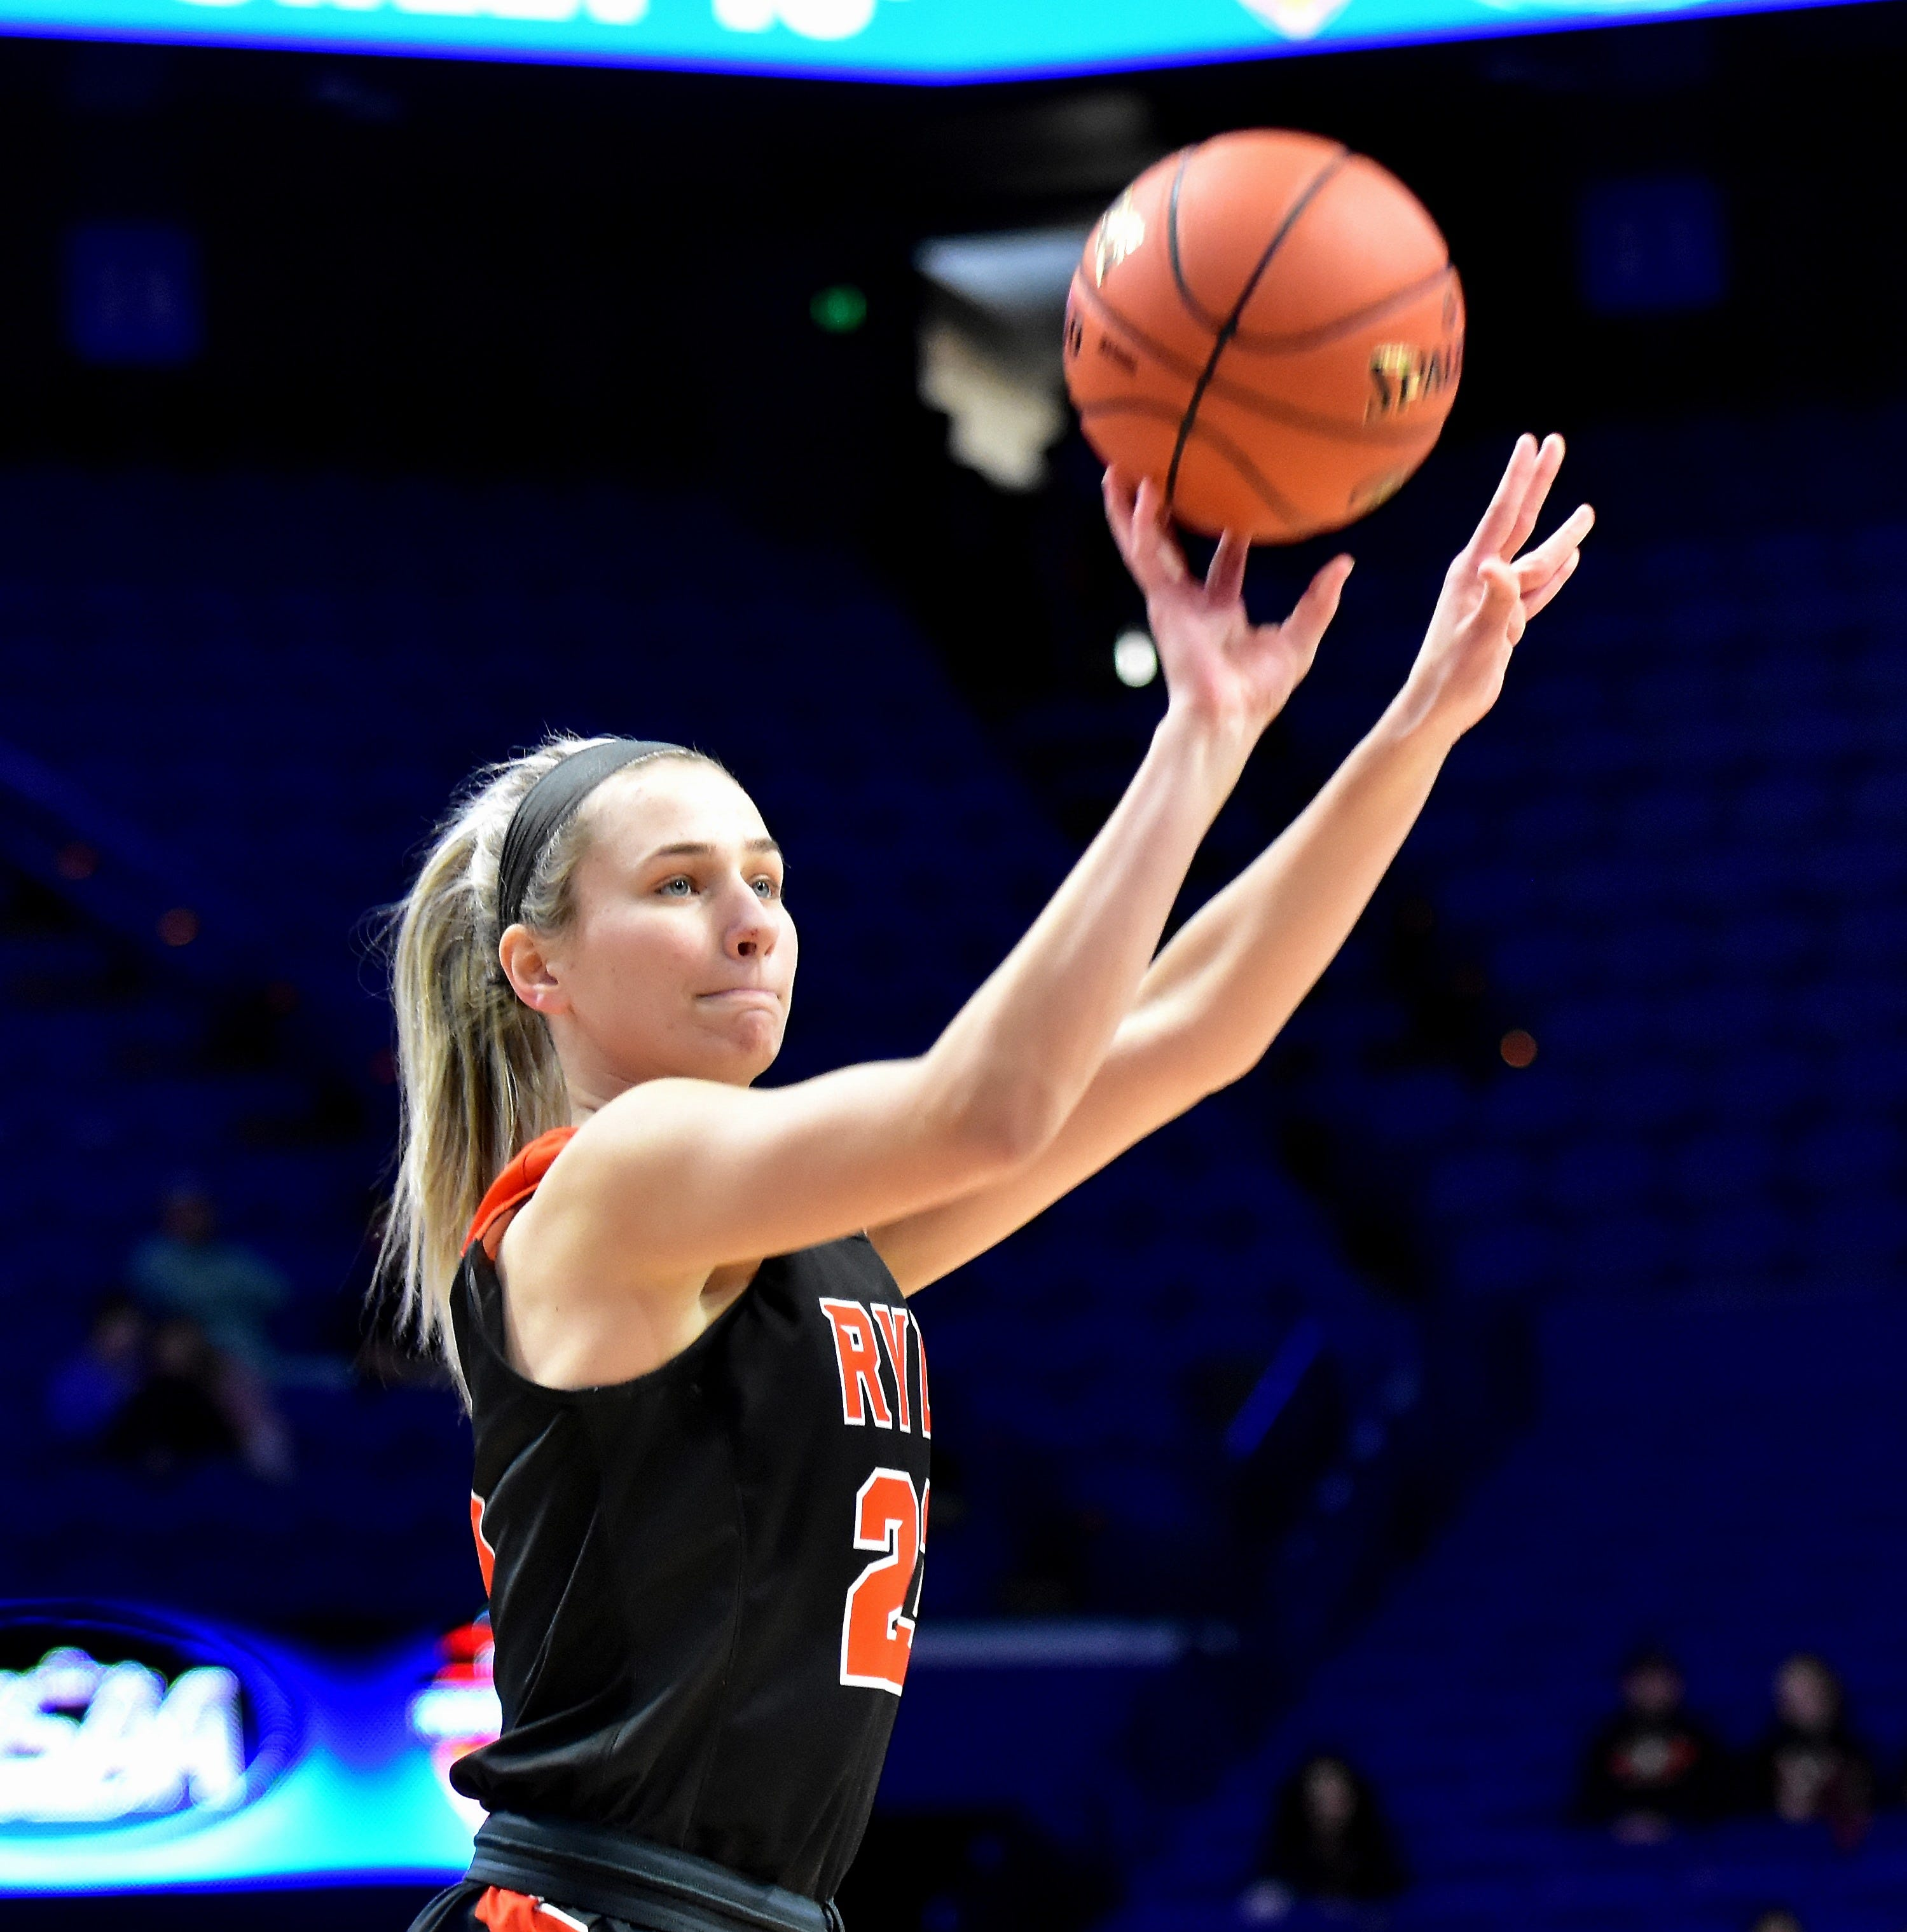 Maddie Scherr pops up a short jump shot for Ryle at the KHSAA Girls Sweet 16 semifinal game at Rupp Arena in Lexington, KY, March 16, 2019